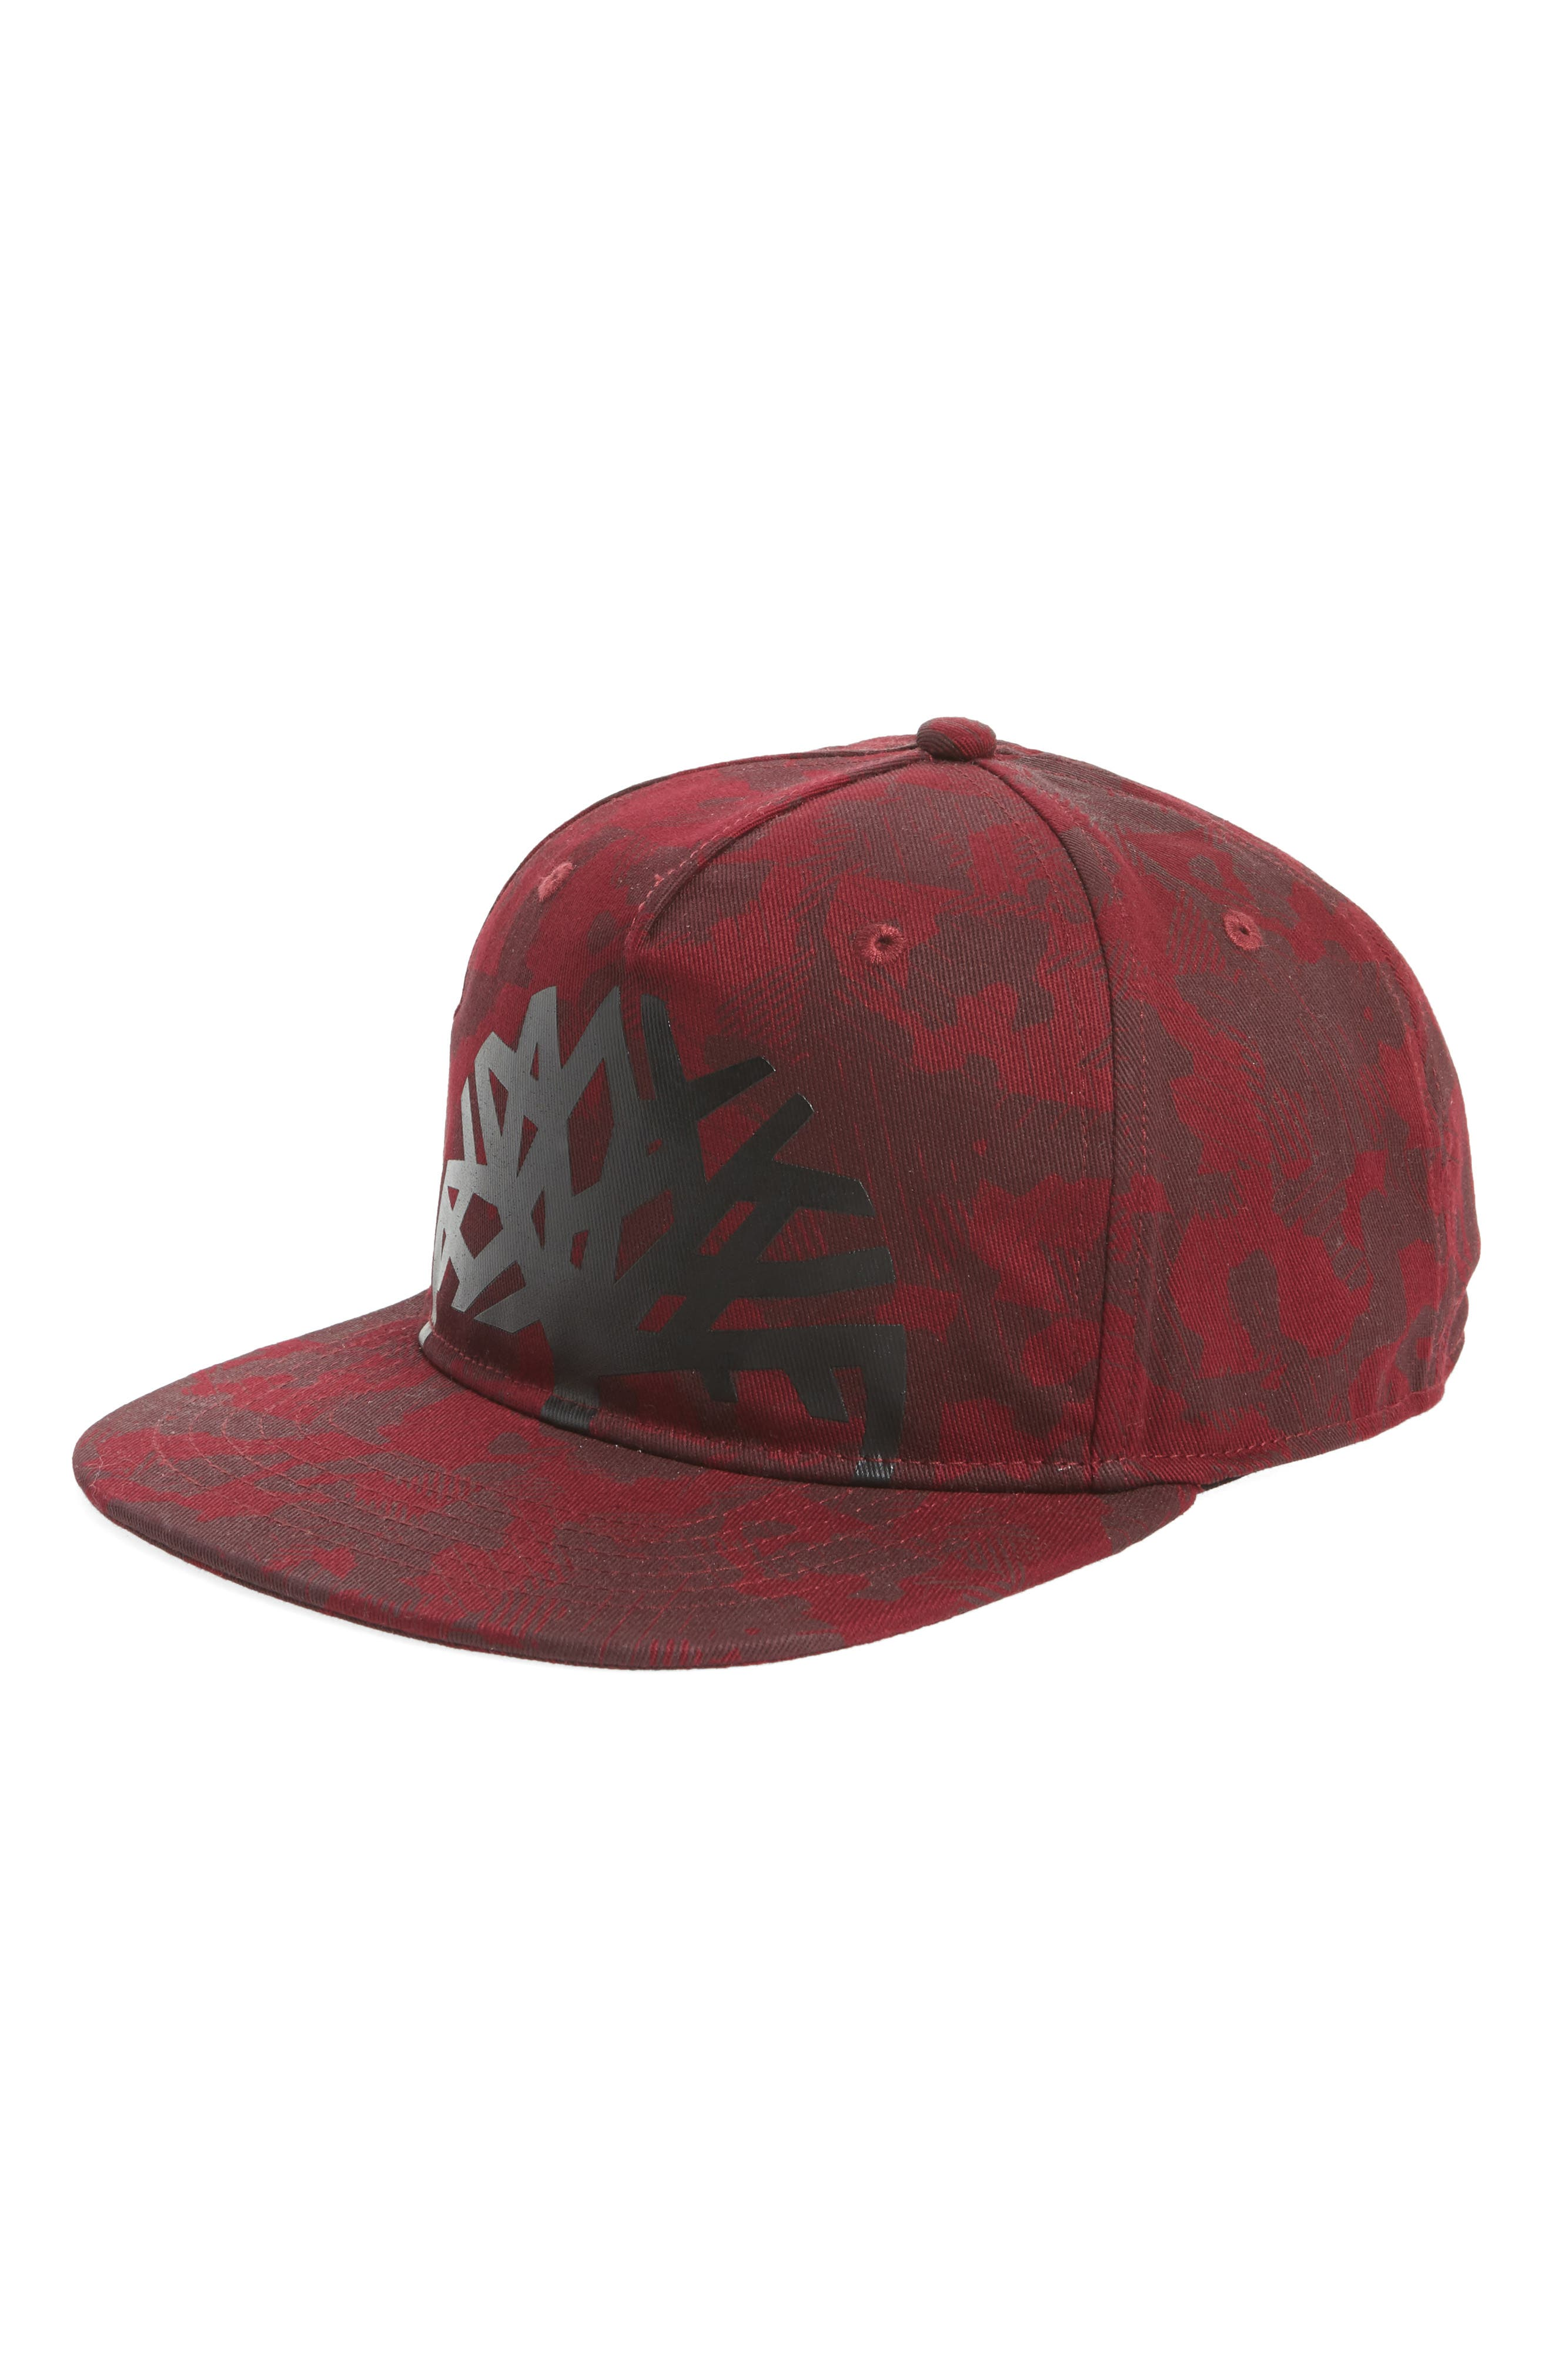 TIMBERLAND CASTLE HILL BASEBALL CAP - RED